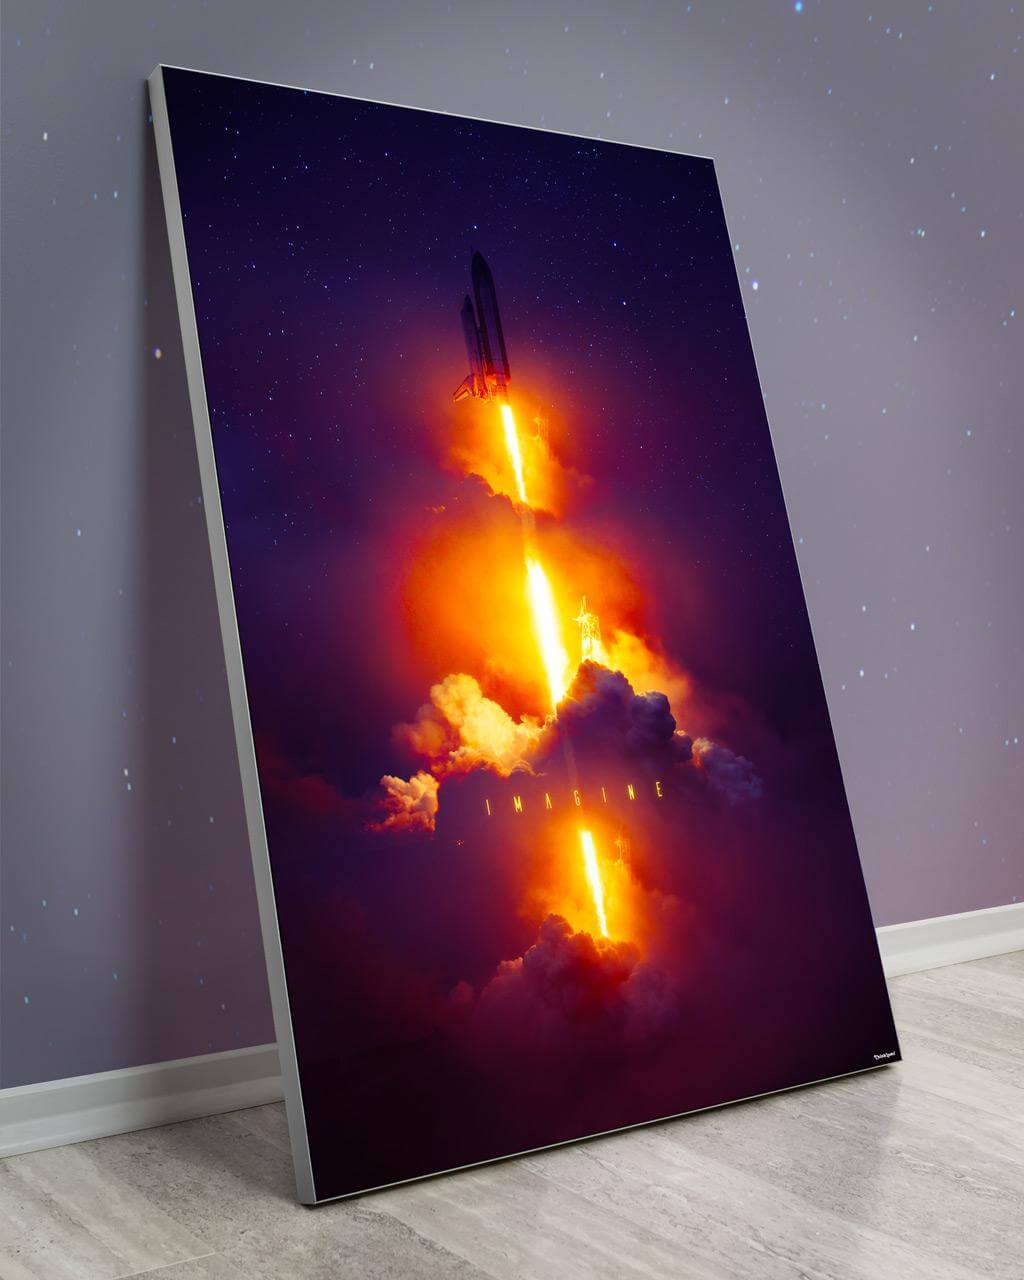 Biggest Outerspace Wall Decor Large Oversized Giant Huge Large Big Biggest Massive Gigantic Wall Art Décor Backlit Fabric Lightbox Home Deco Artwork Colorful Surreal Digital Illustrator Futuristic Neon Rainbow Space Artist Think Lumi Thinklumi Instagram Astronaut Galaxy Space Futuristic Future